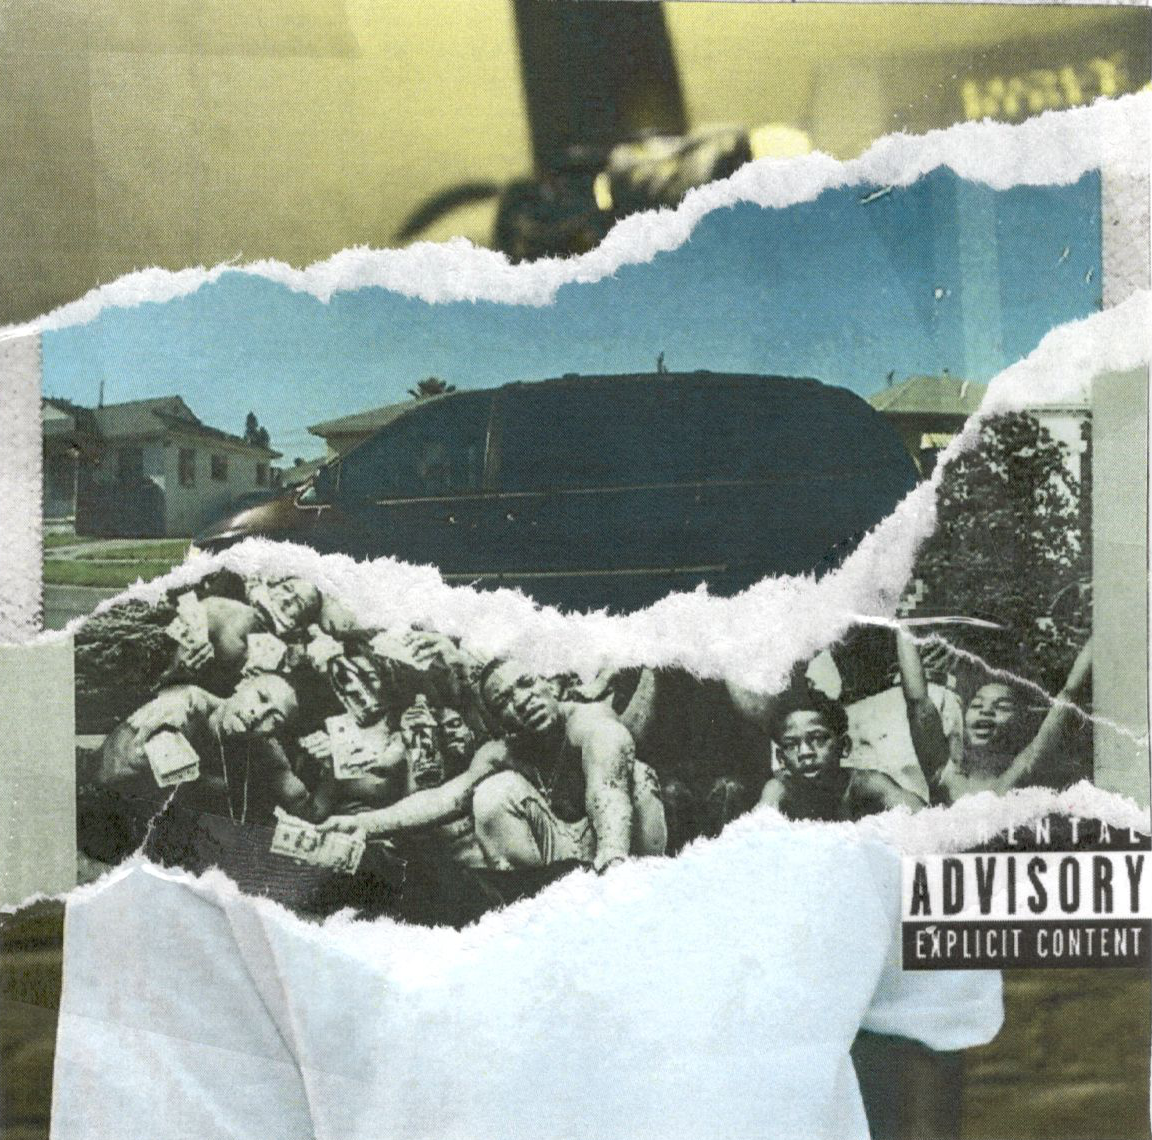 - A compilation of the most recent albums released by Hip-Hop artist Kendrick Lamar. This piece was a more hands on project where each cover was printed out, torn up and then scanned back into digital format.